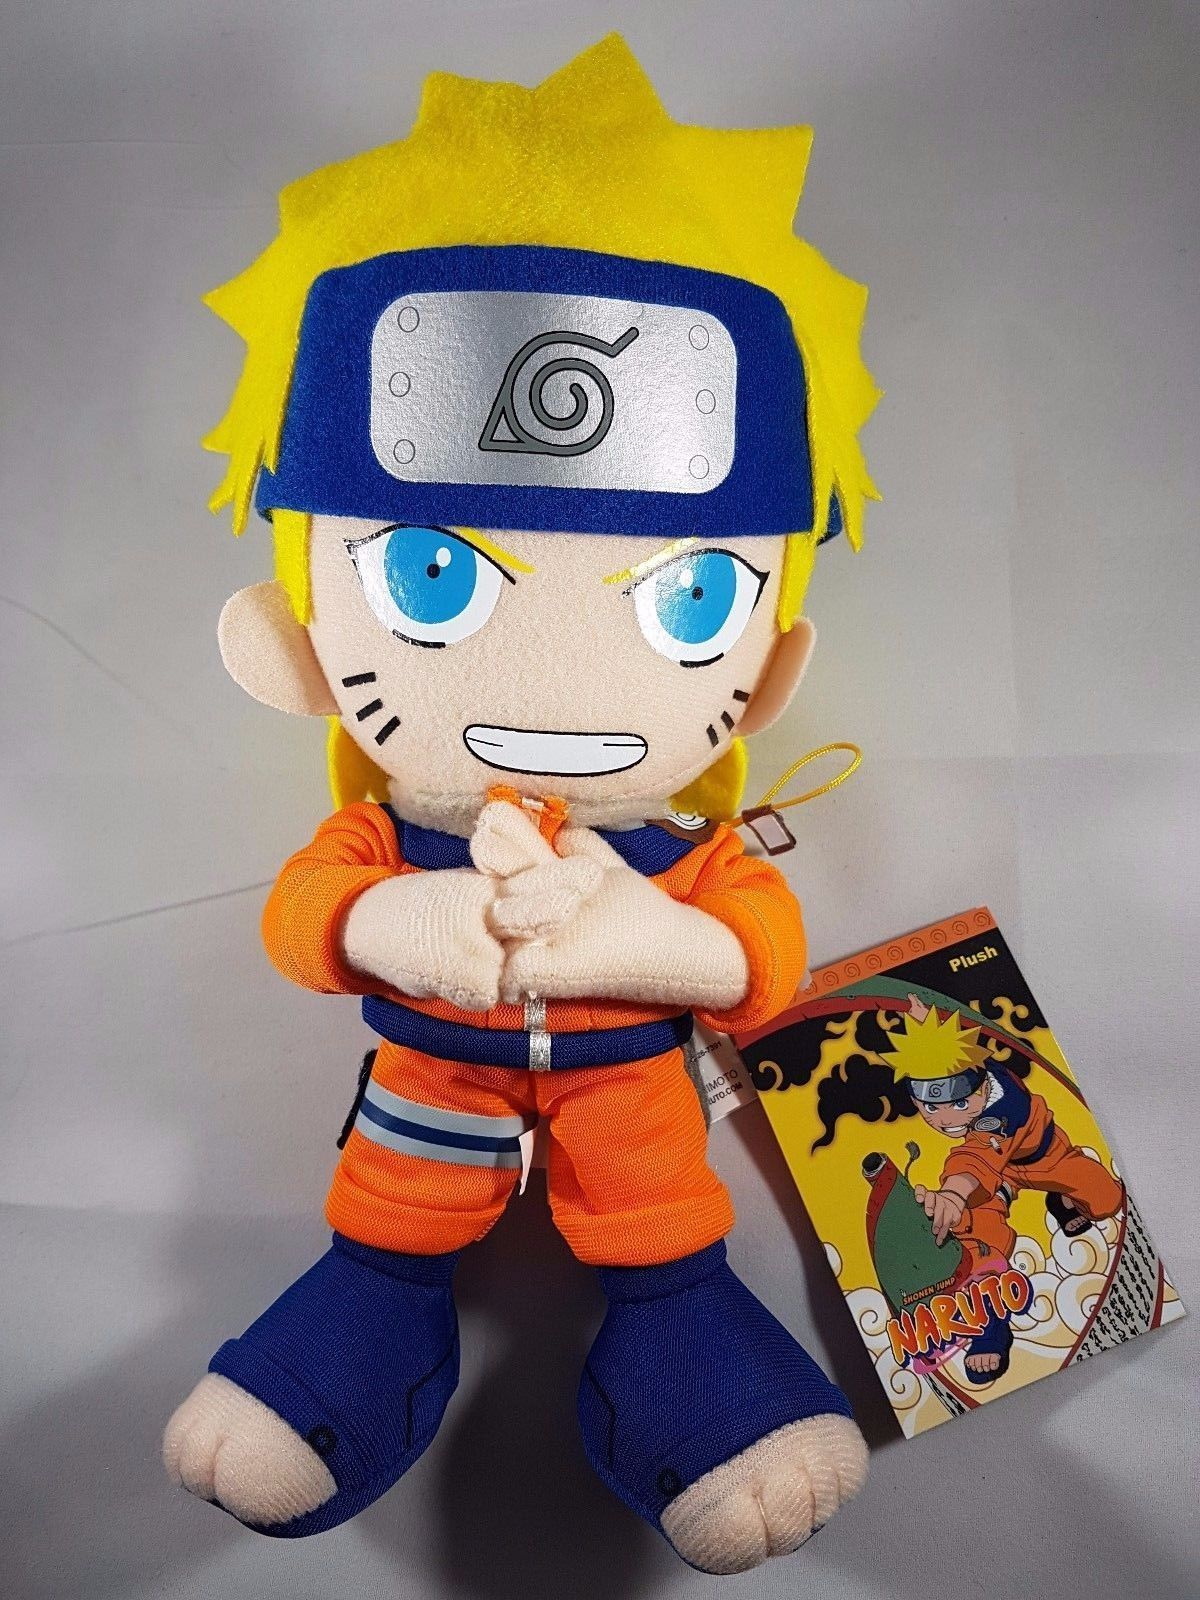 Official naruto stuffed plush doll by great eastern new